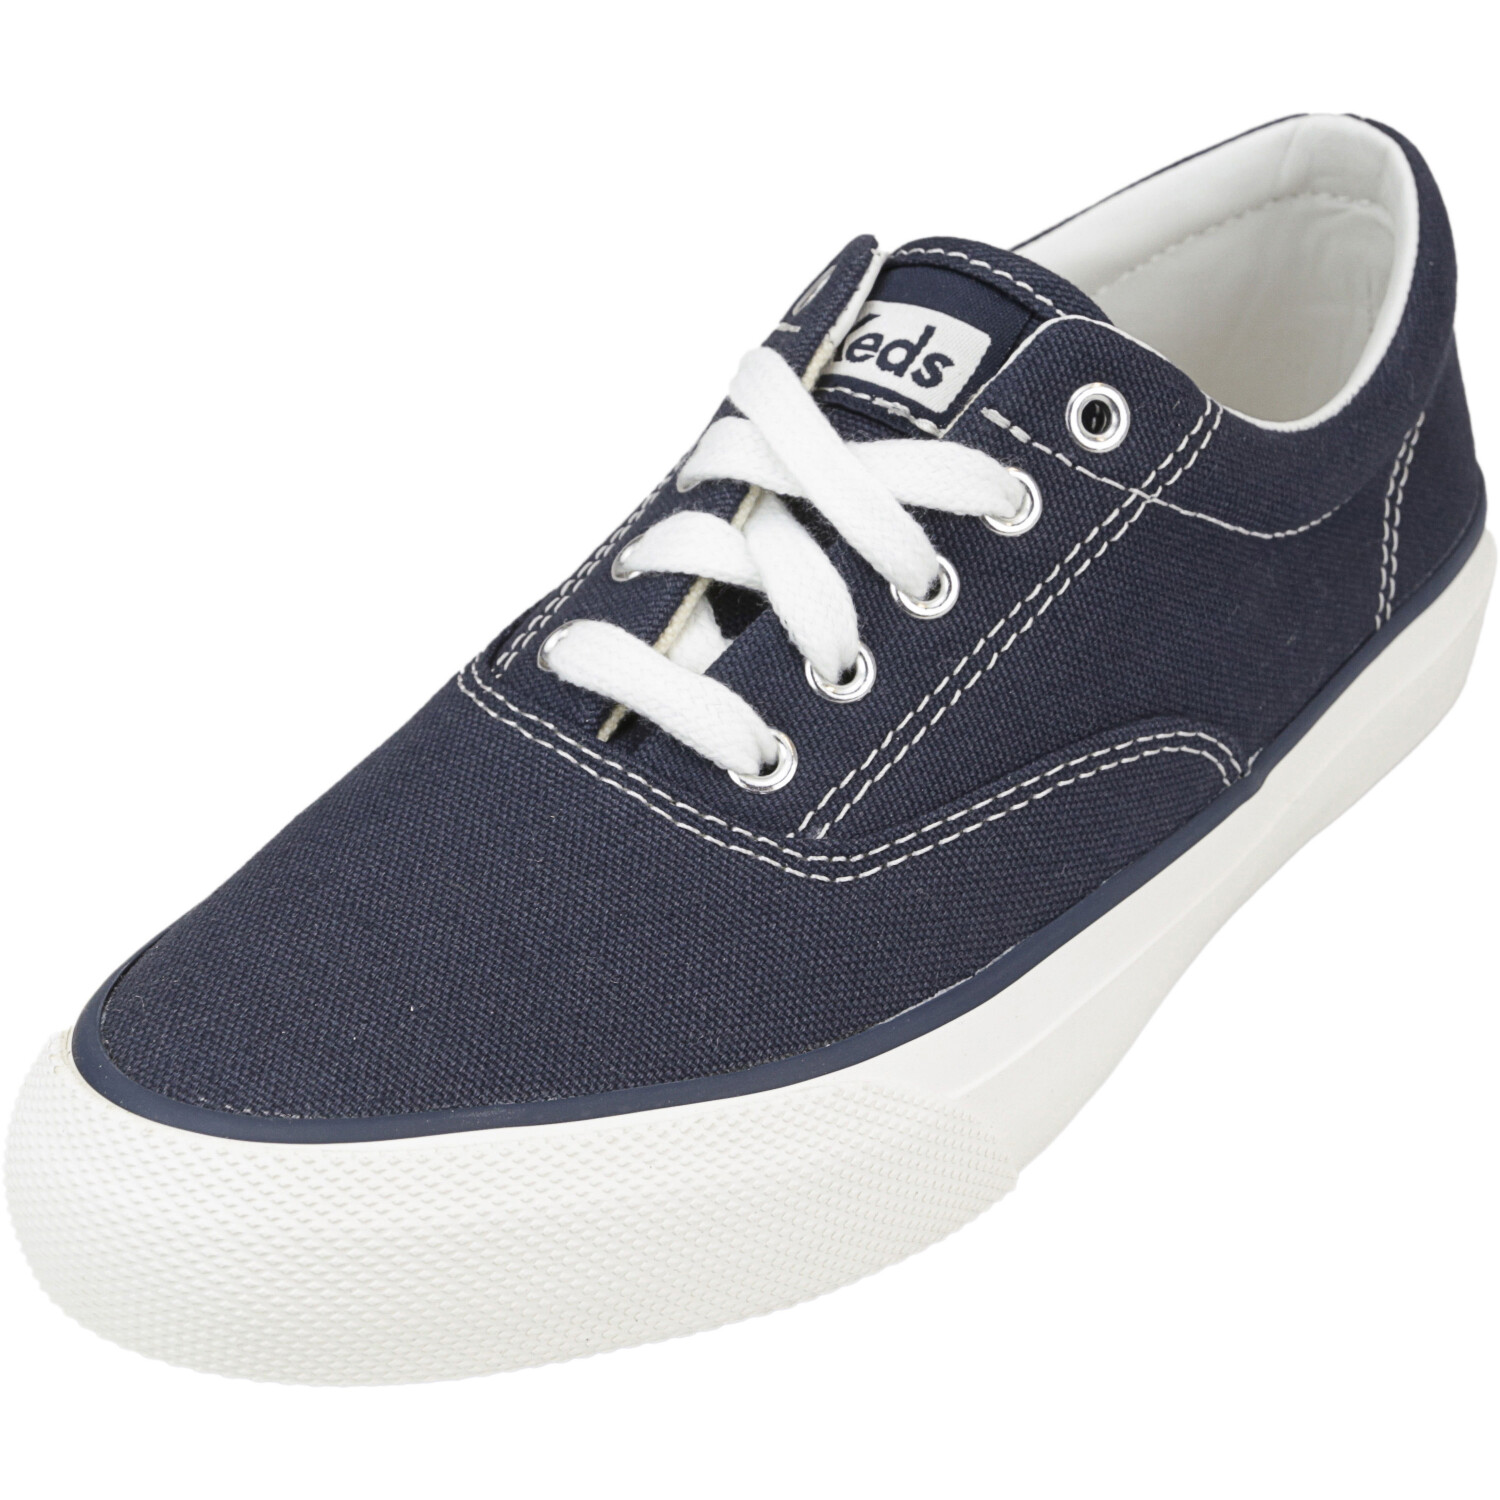 Keds Women's Anchor Solid Navy Ankle-High Fabric Wedge Sneakers - 5M